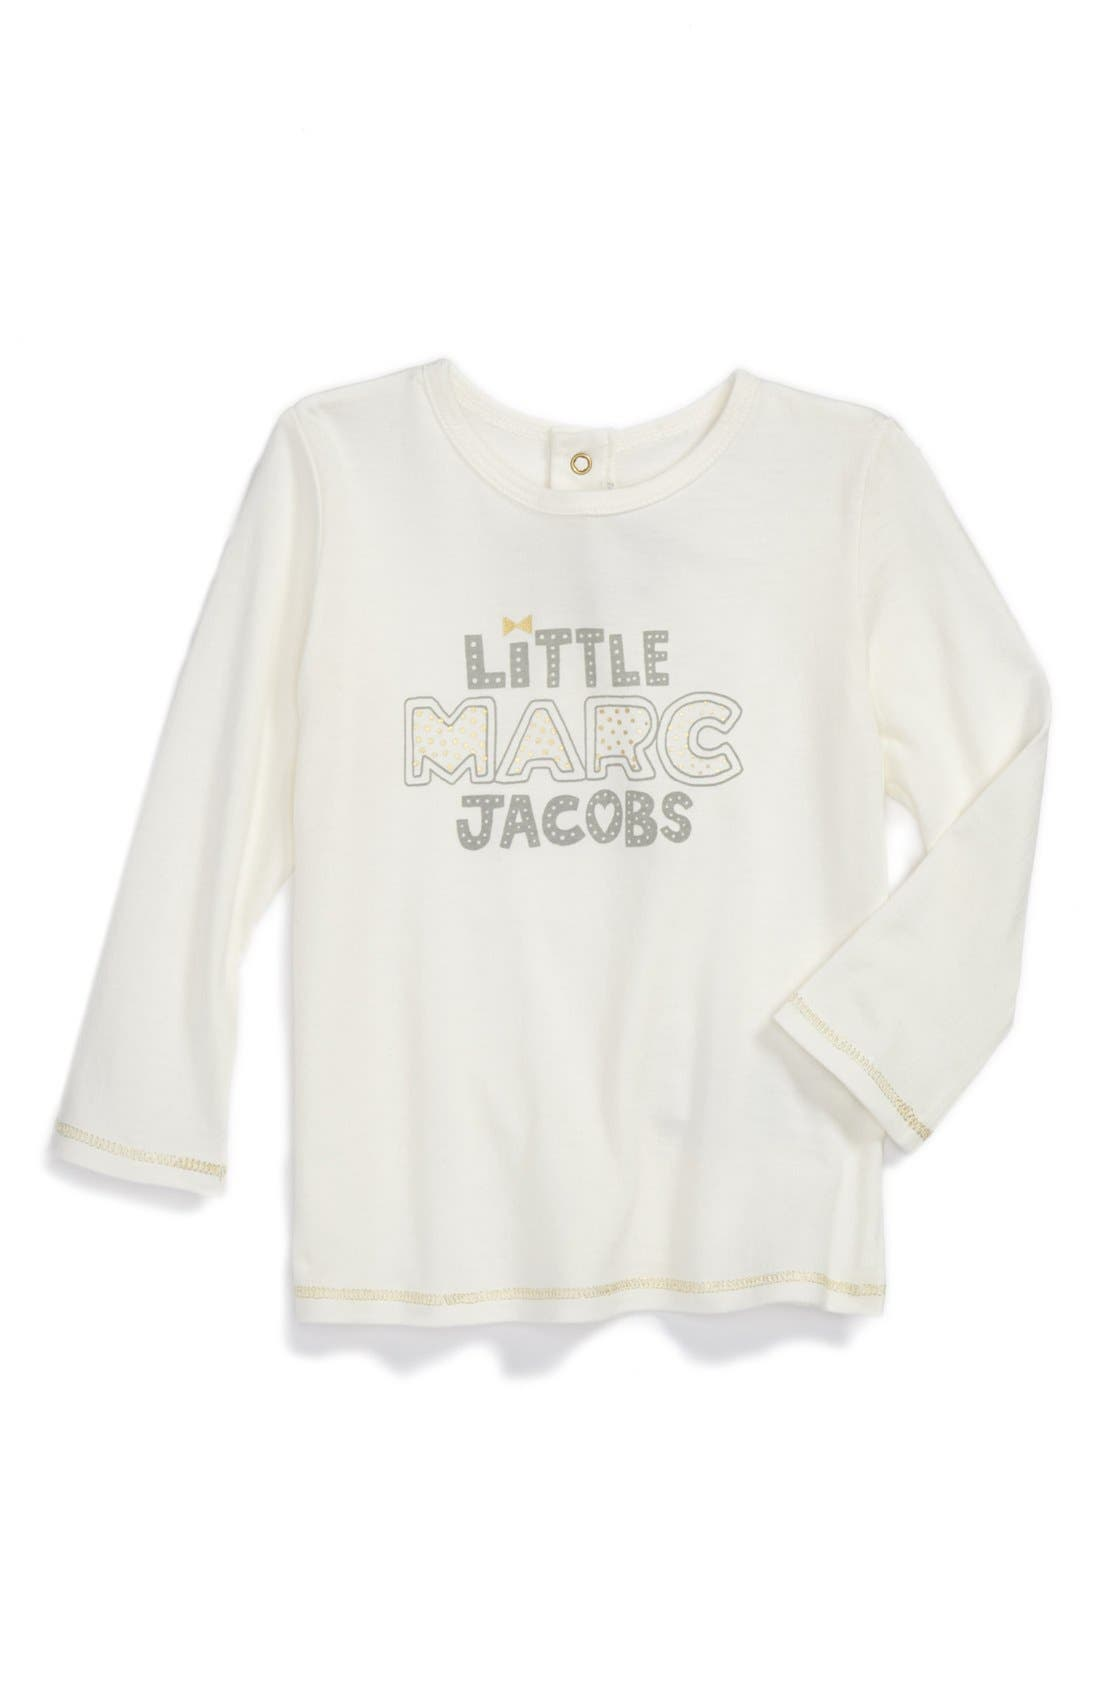 Alternate Image 1 Selected - LITTLE MARC JACOBS Long Sleeve Tee (Baby Girls)